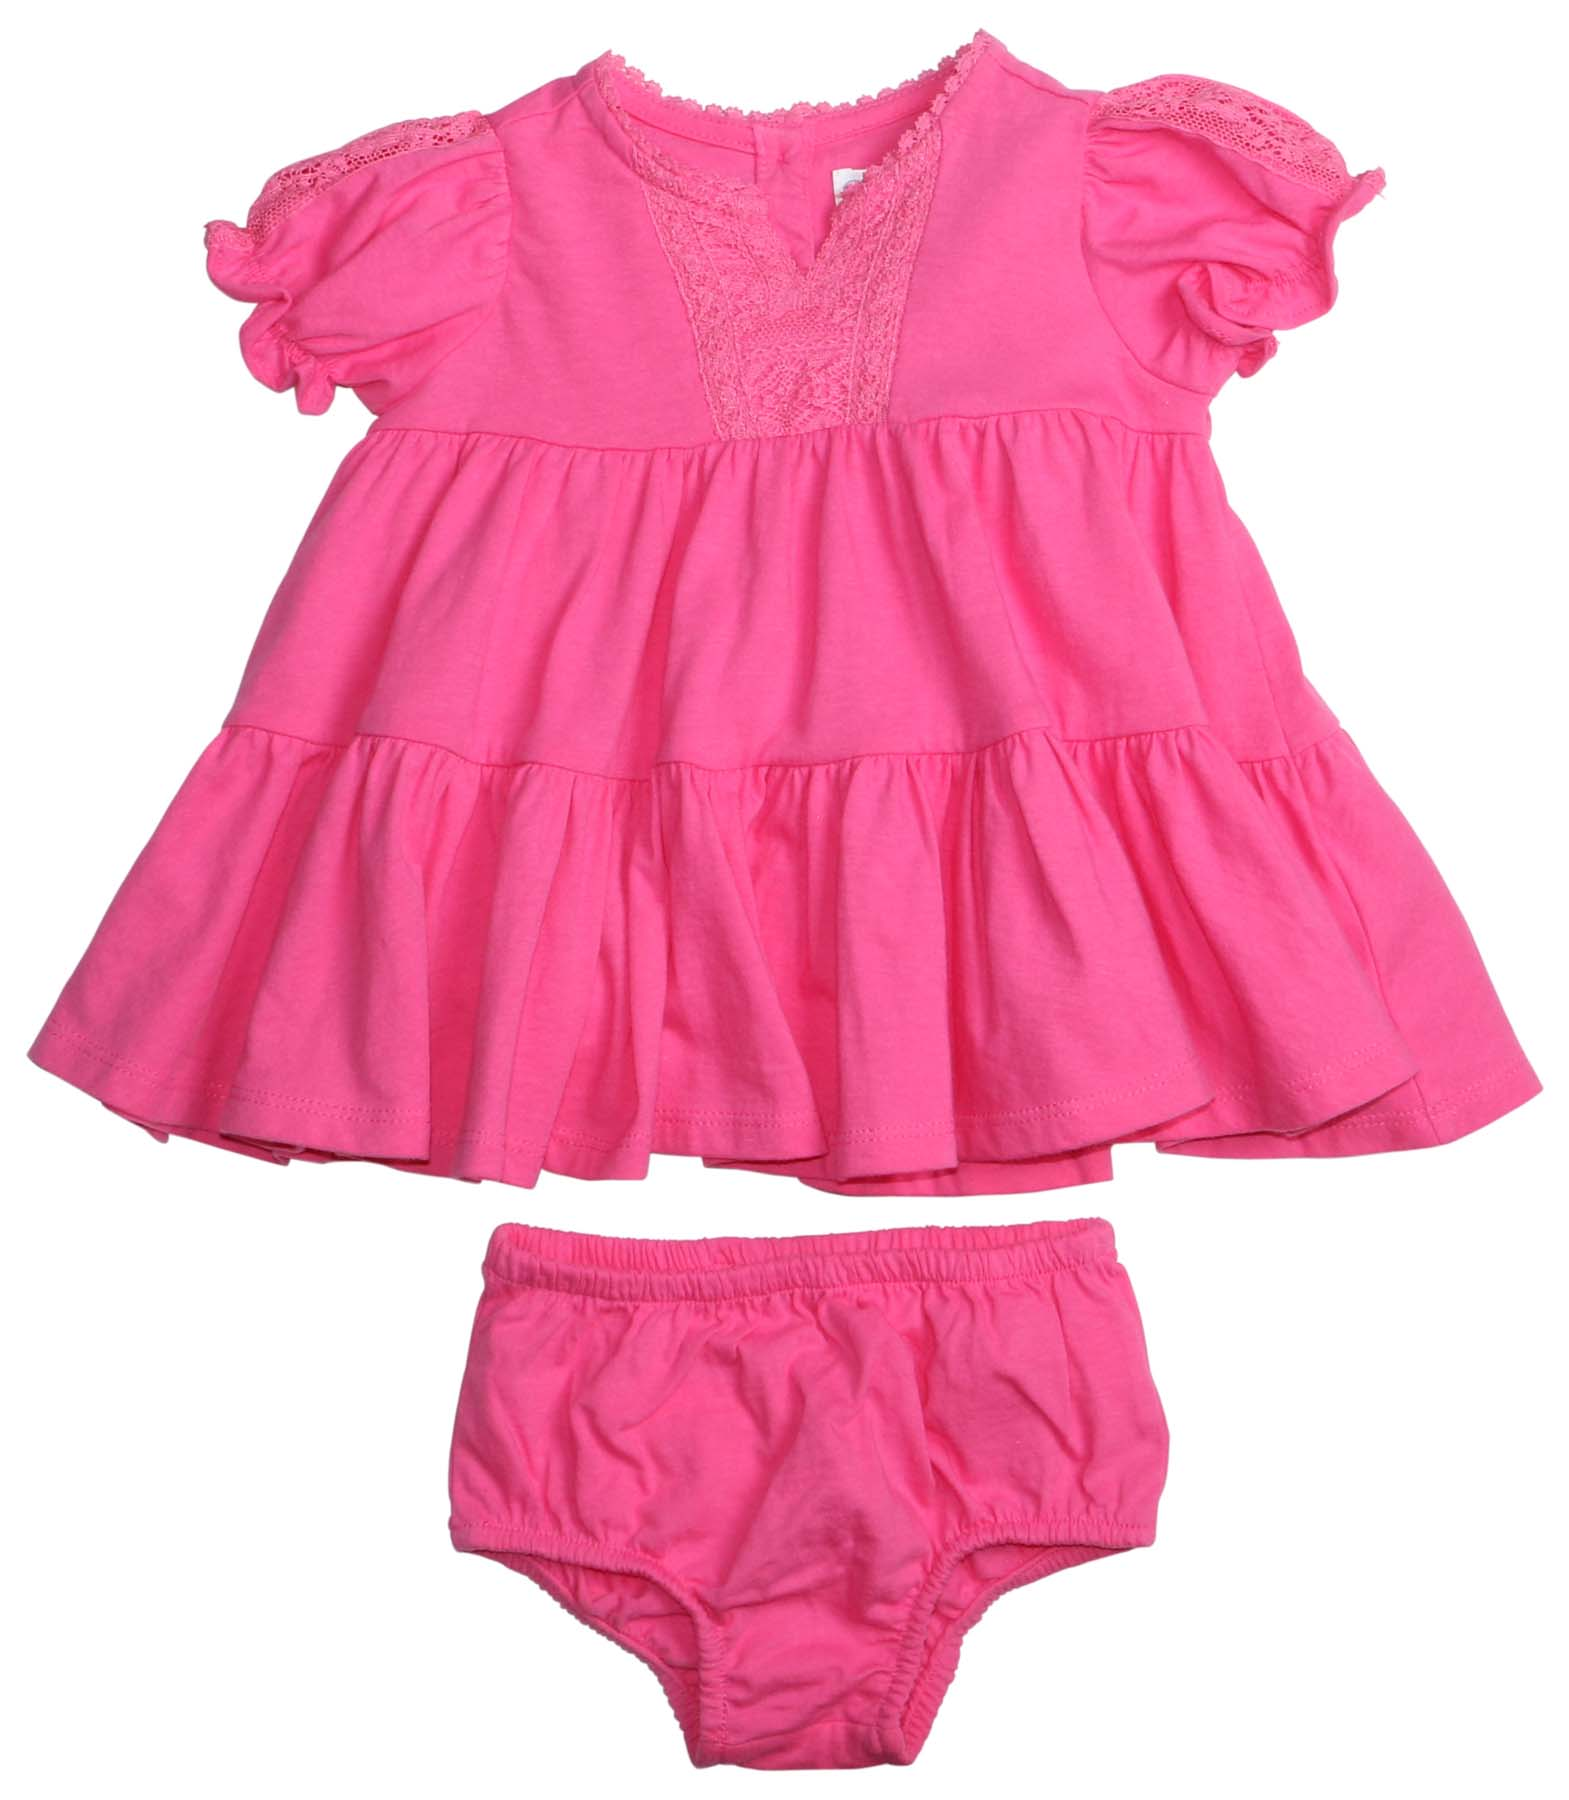 7a840ba69 Polo Ralph Lauren Infant Girls  (0M-24M) 2 Piece Dress Set-Pink-24M ...